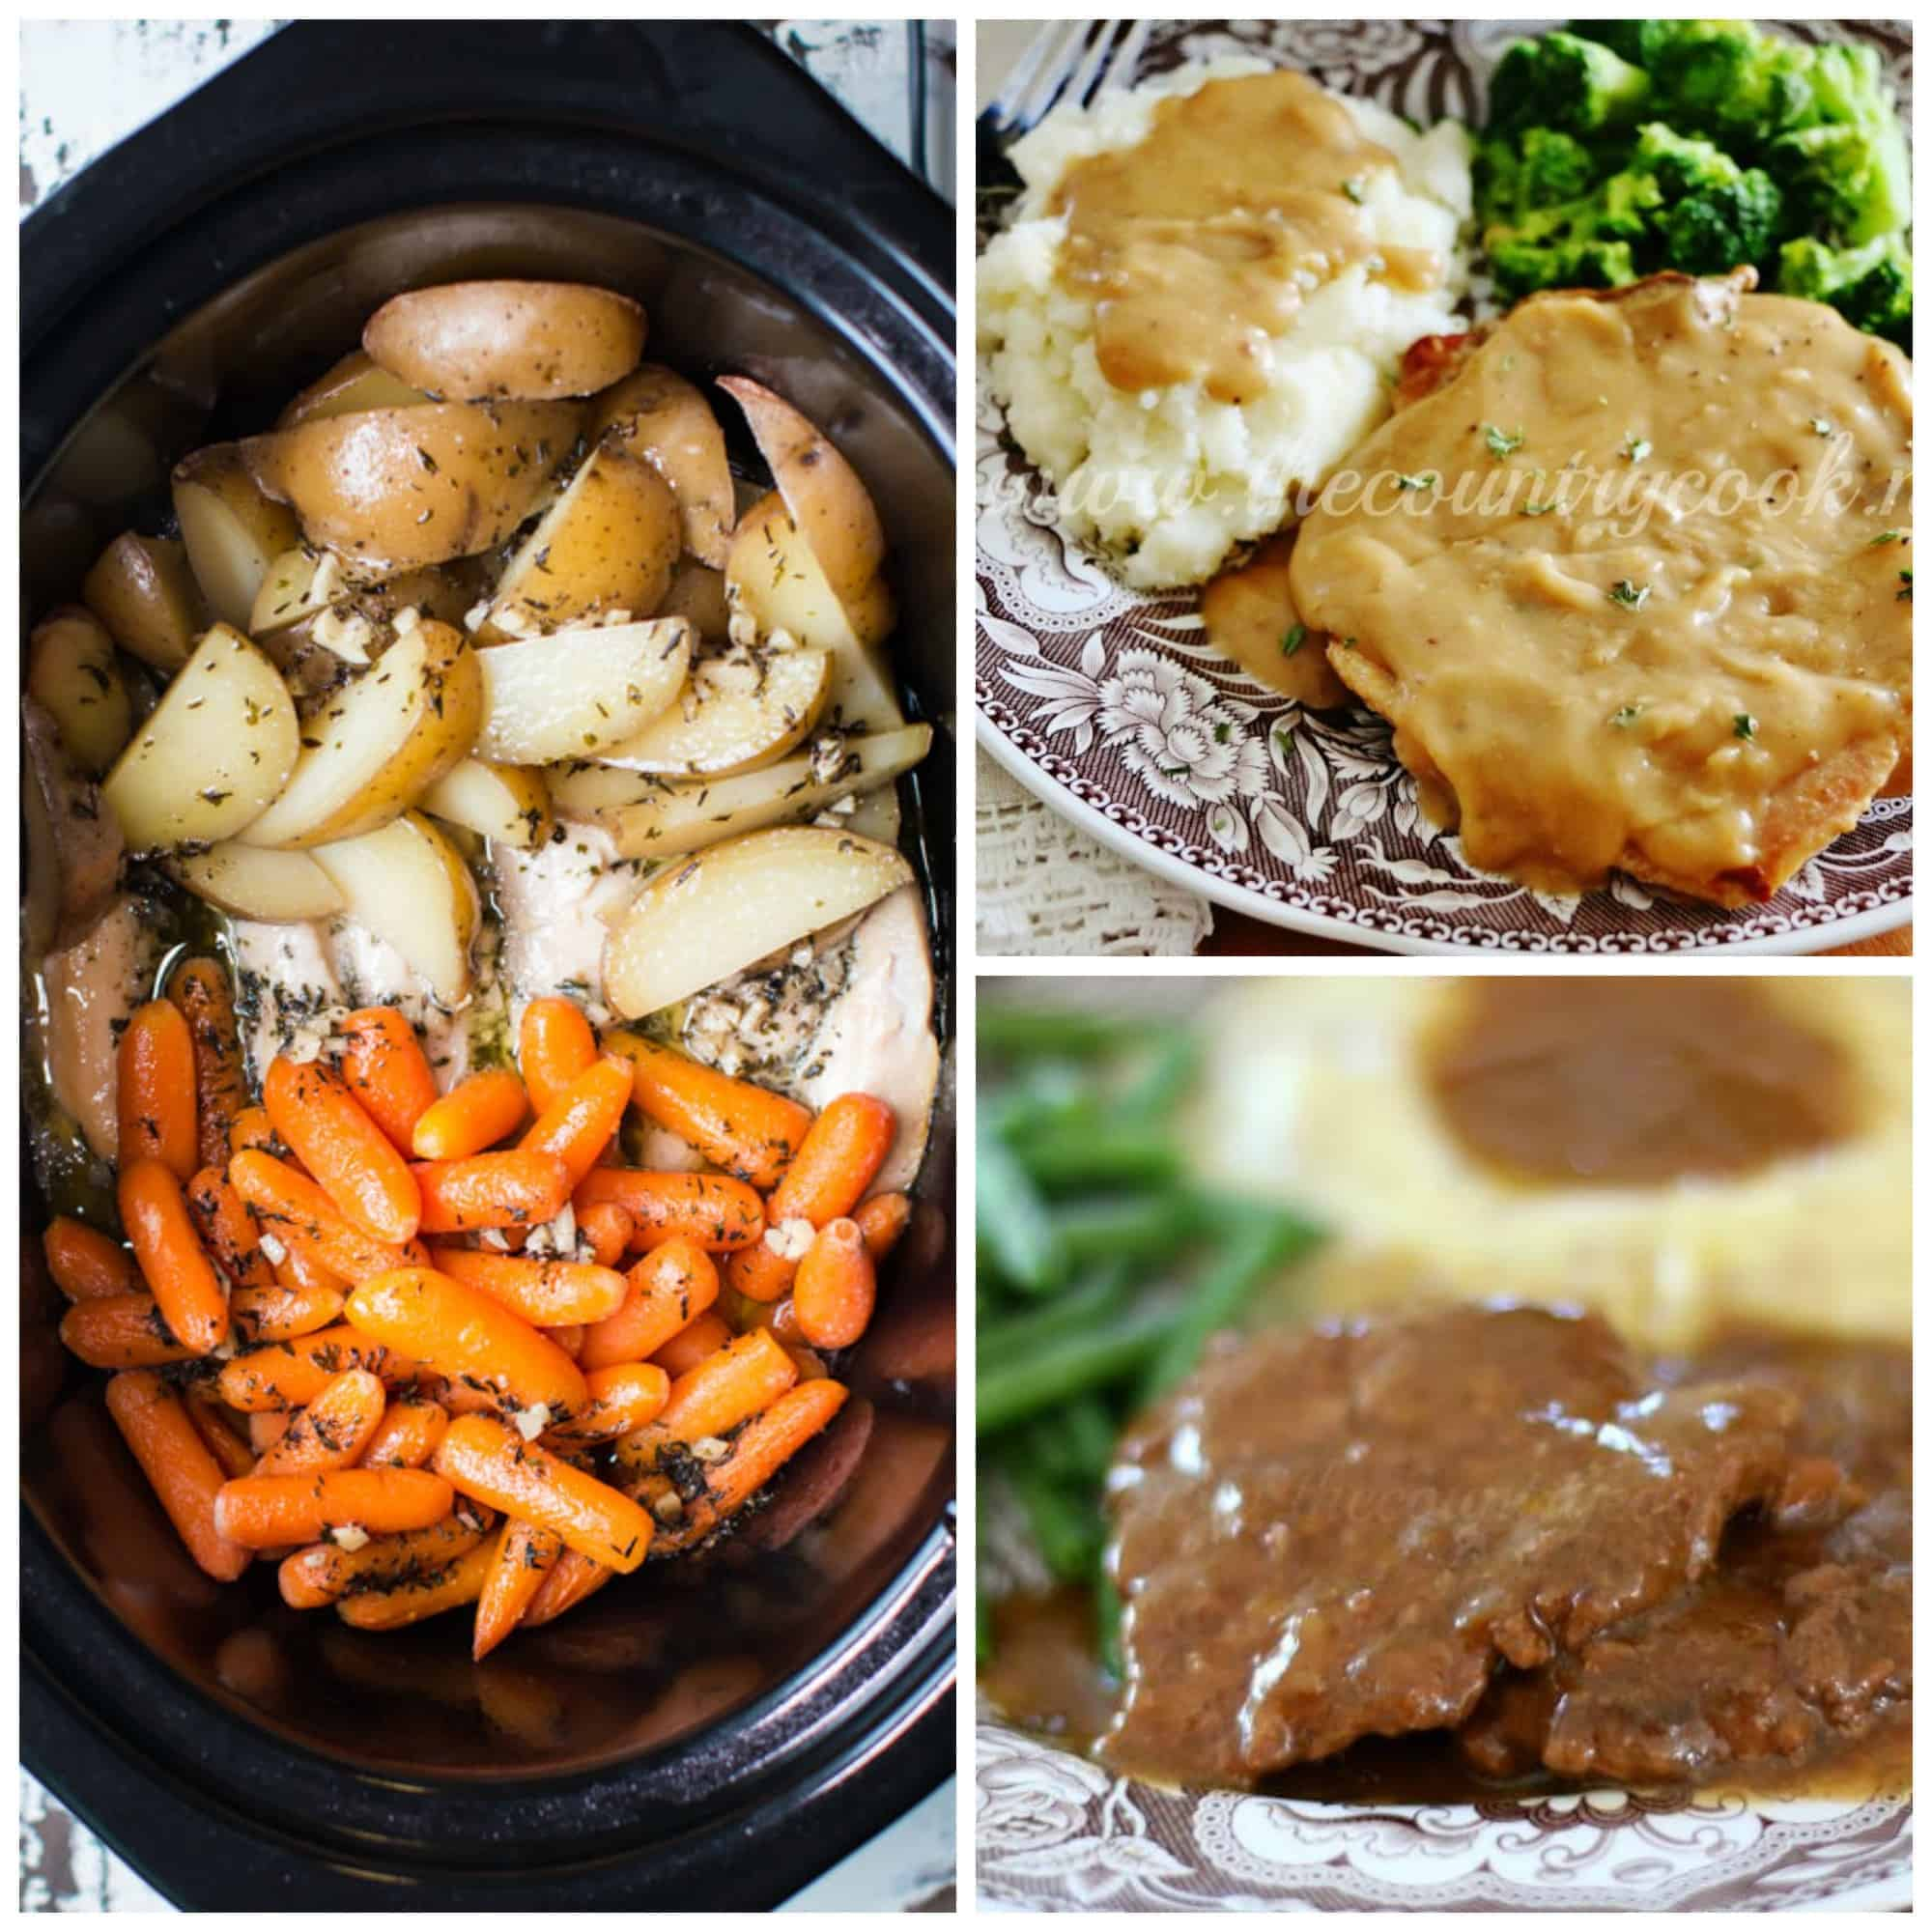 These 15 Slow Cooker recipes are THE BEST! I'm so happy I found these GREAT slow cooker recipes! Now I have some healthy dinner recipes to try tonight! I've been wanting to try some new slow cooker recipes and these look perfect to try! So pinning these slow cooking recipes for sure!